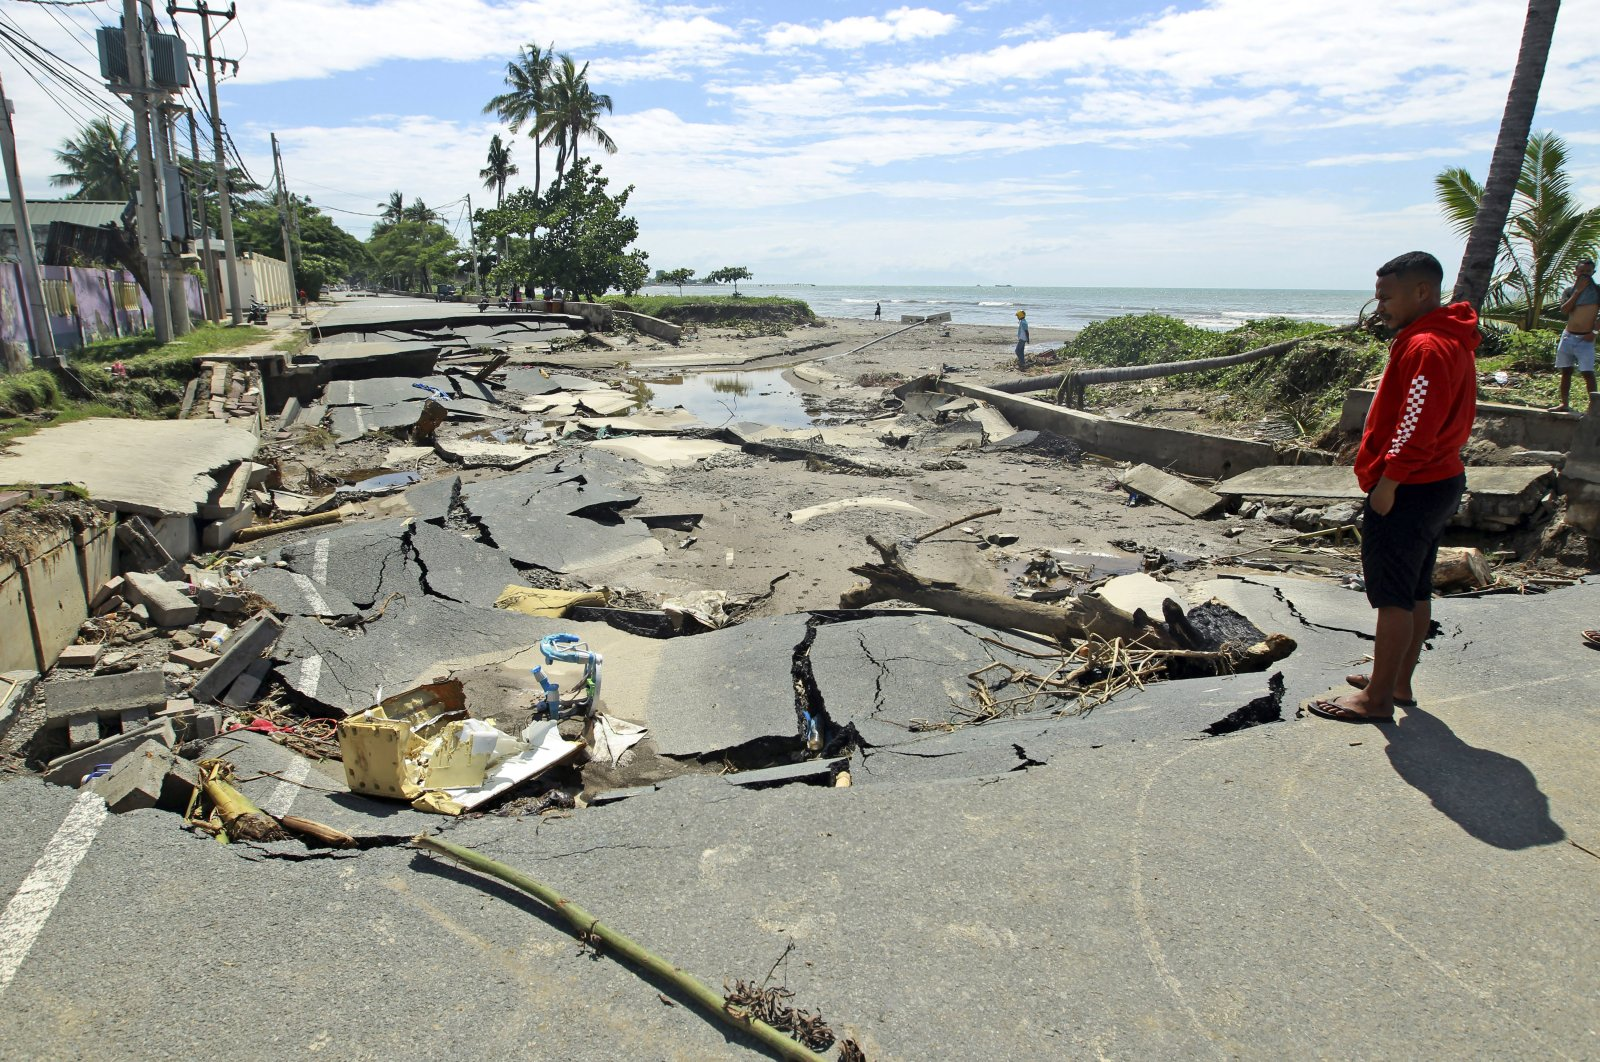 A man inspects a road destroyed after a flood in Dili, East Timor, April 6, 2021. (AP Photo)